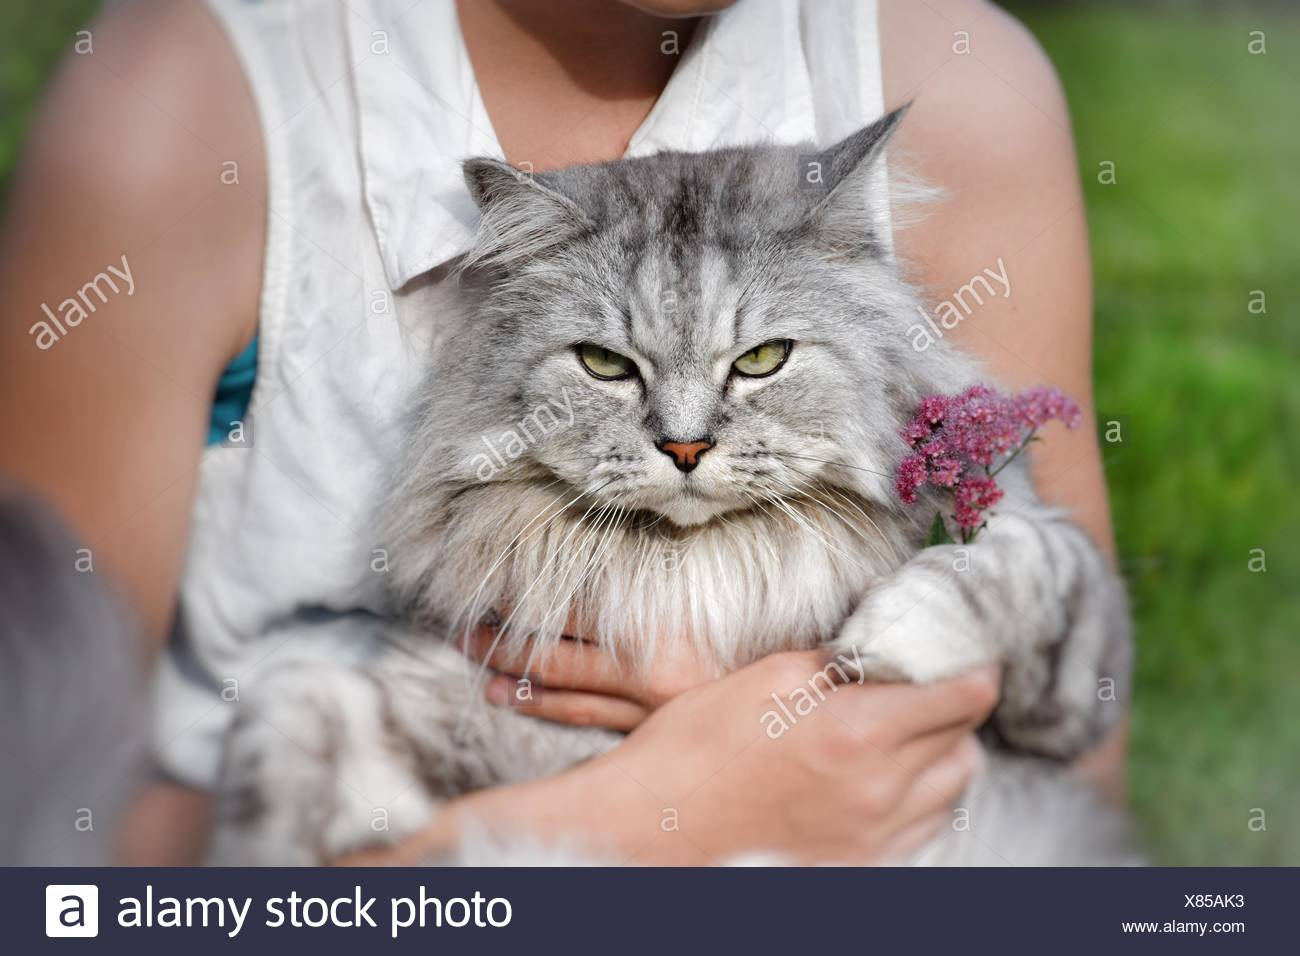 Teenage Girl sitting with a cat on her lap - Stock Image